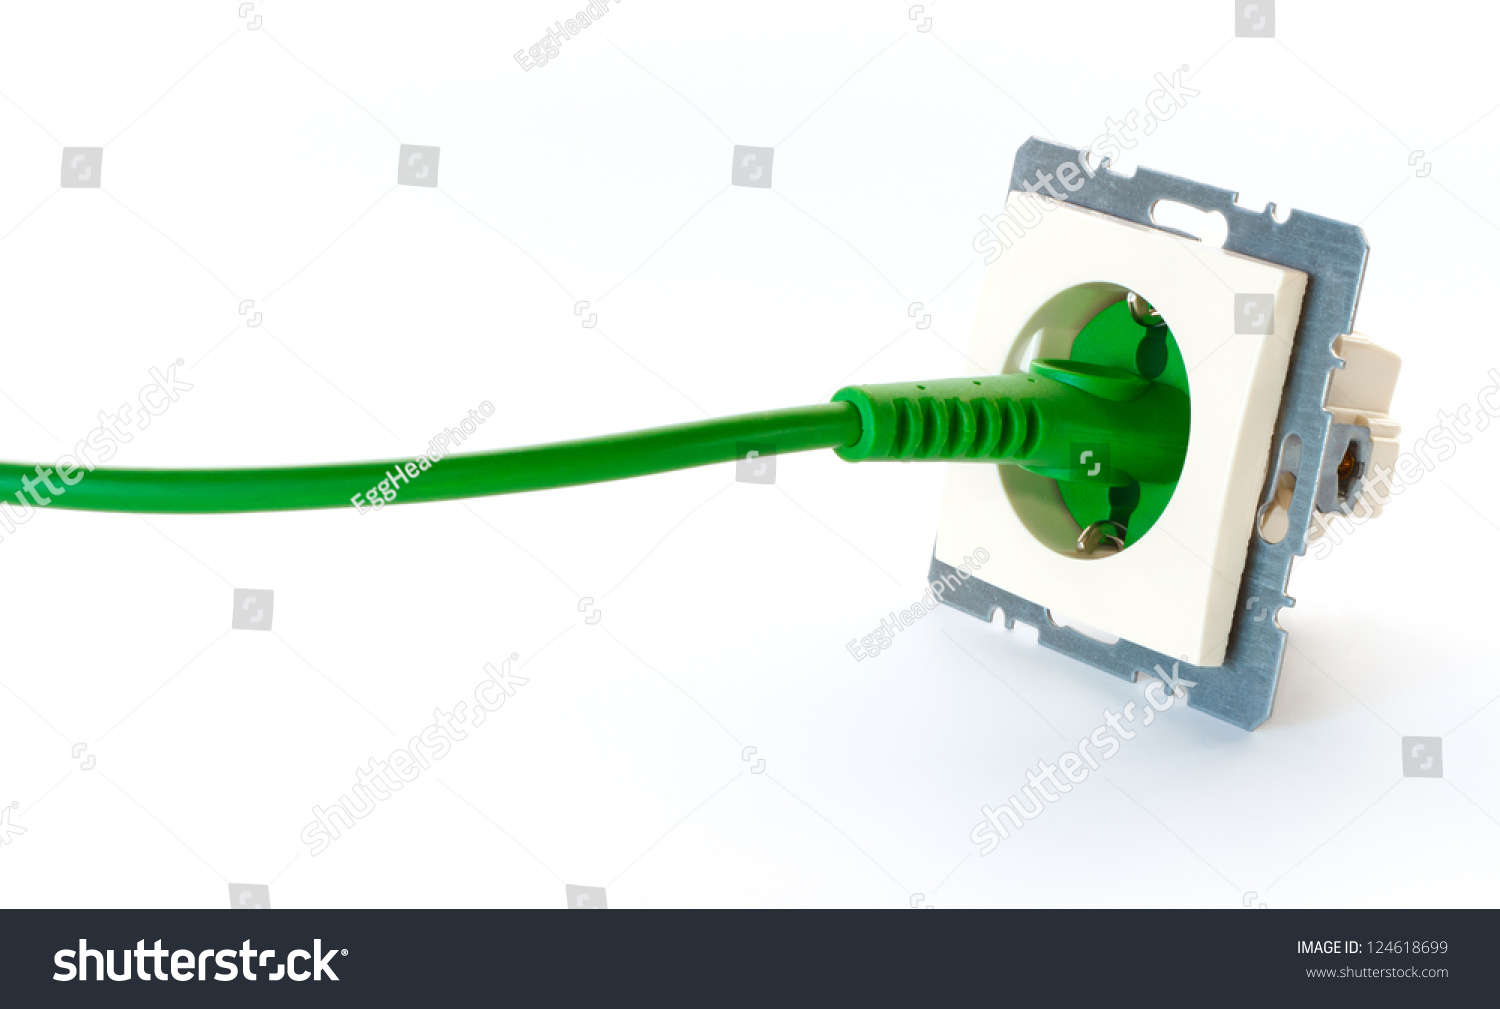 Green Power Cable : Green power cable plugged into wall outlet without cover